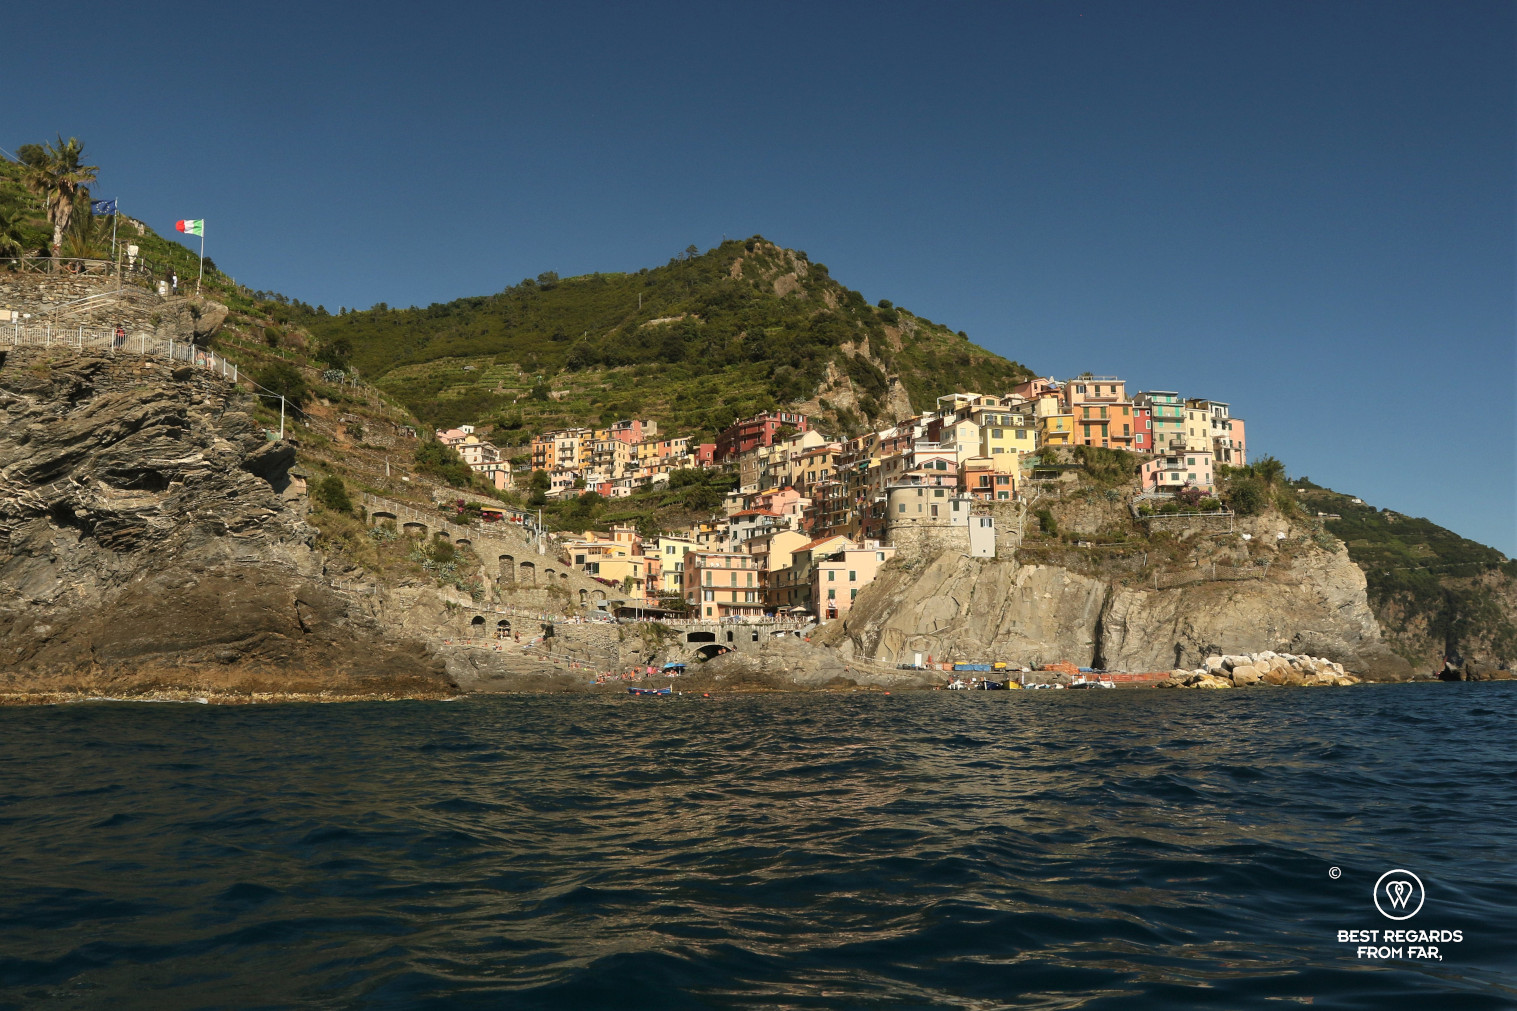 Colourful houses of Manerola seen from the sea with blue skies